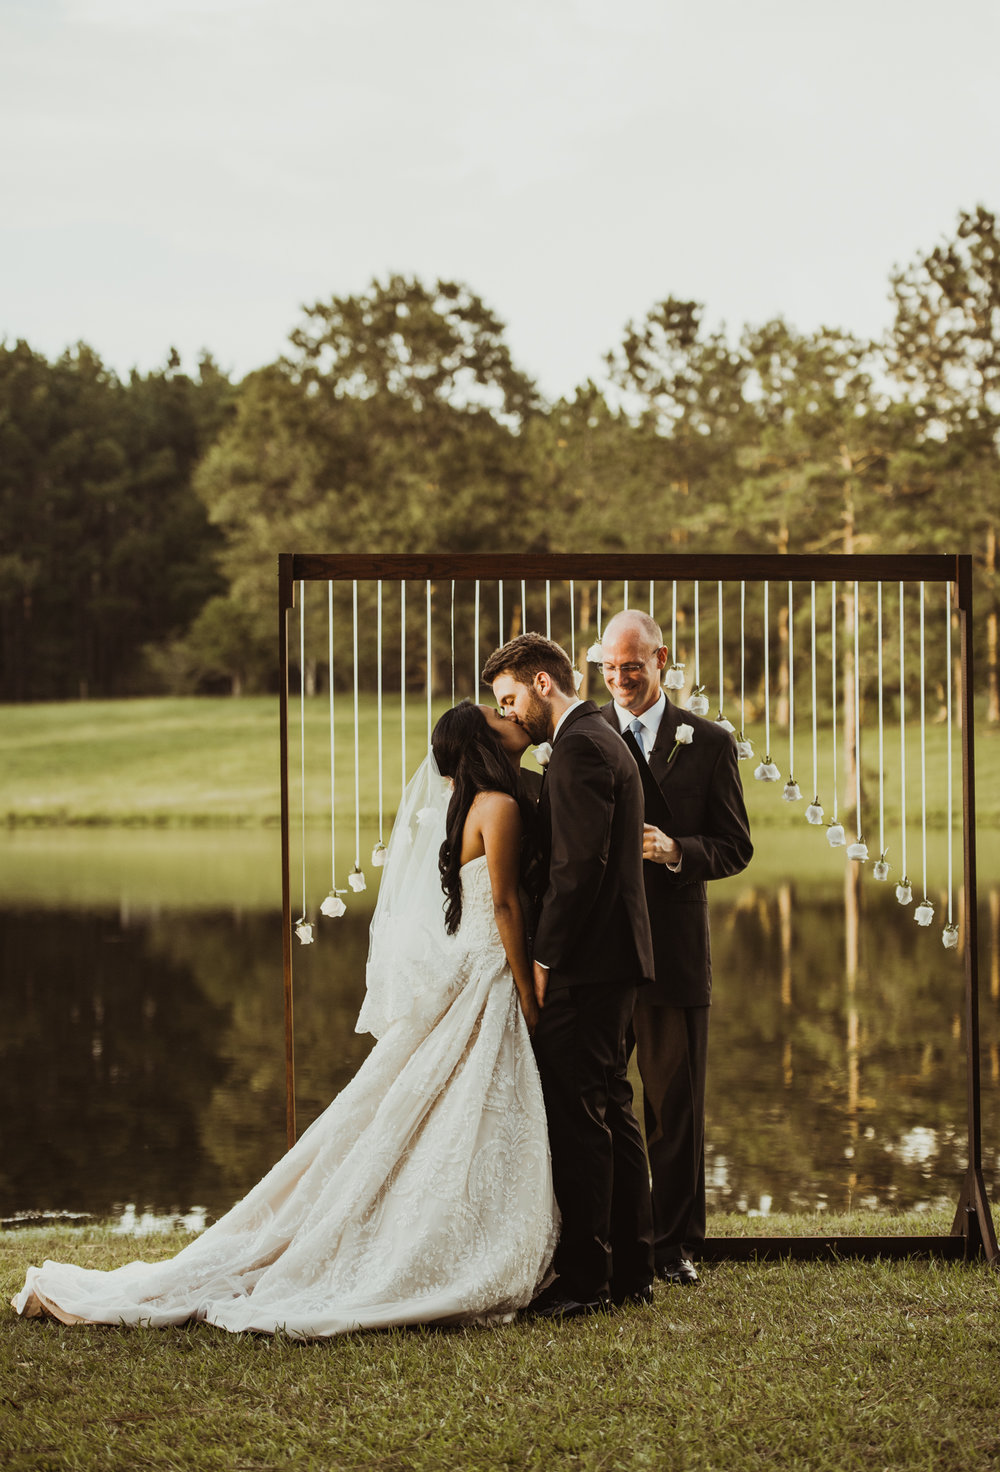 ©Isaiah & Taylor Photography - Lakeside Barn Wedding, Private Estate, Poplarville Mississippi-78.jpg